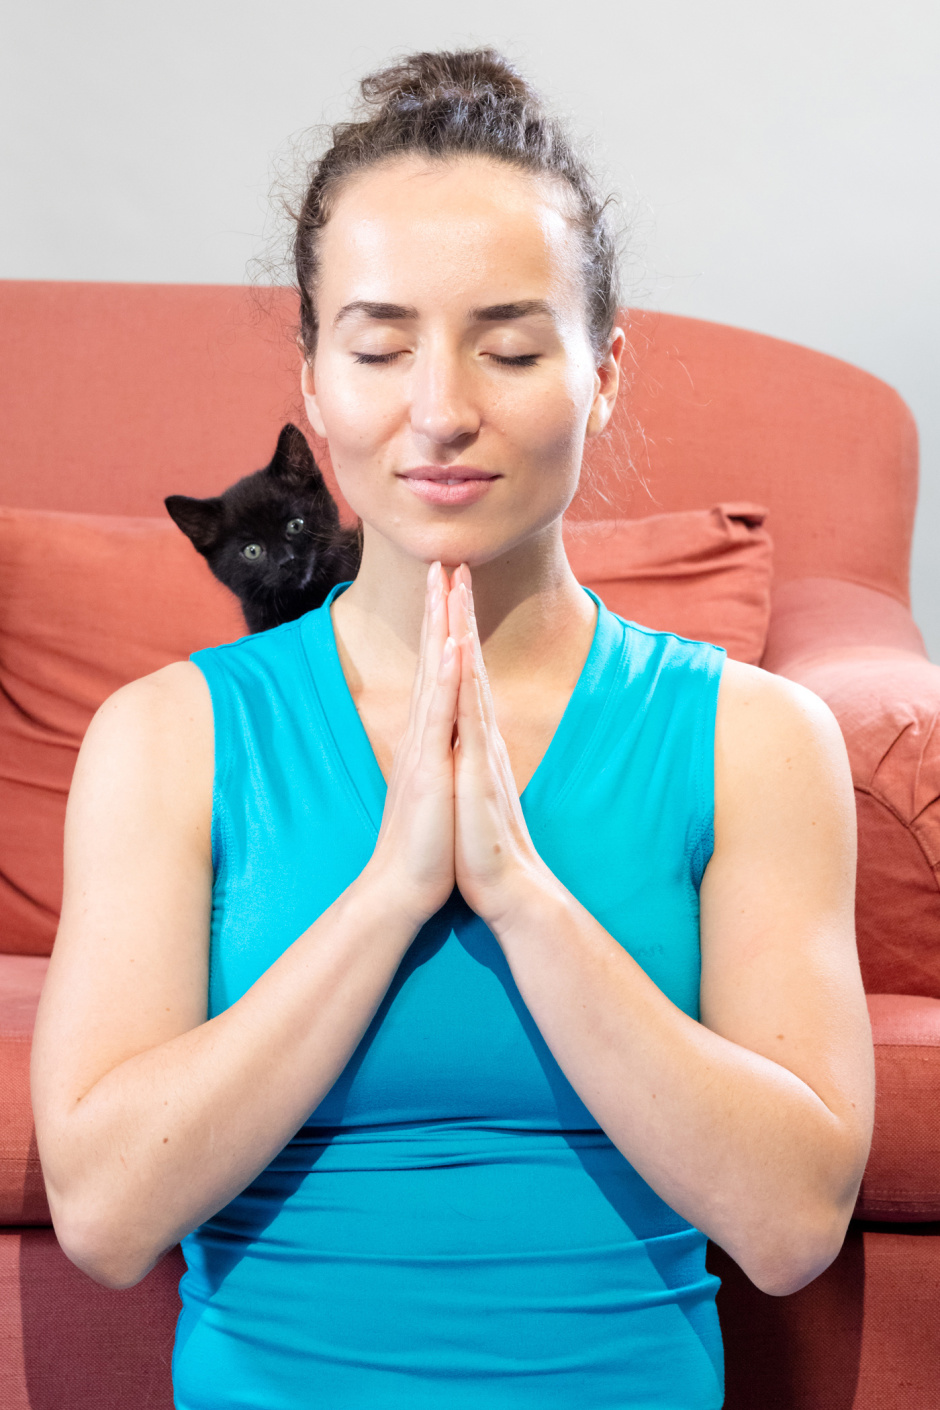 Working with mindfulness experts at London Mindful, pet charity Blue Cross has created a new meditation class called 'Karma Kitties' which marries the essential principles of mindfulness classes with cute rescue cat video clips and the soothing sounds of cats.